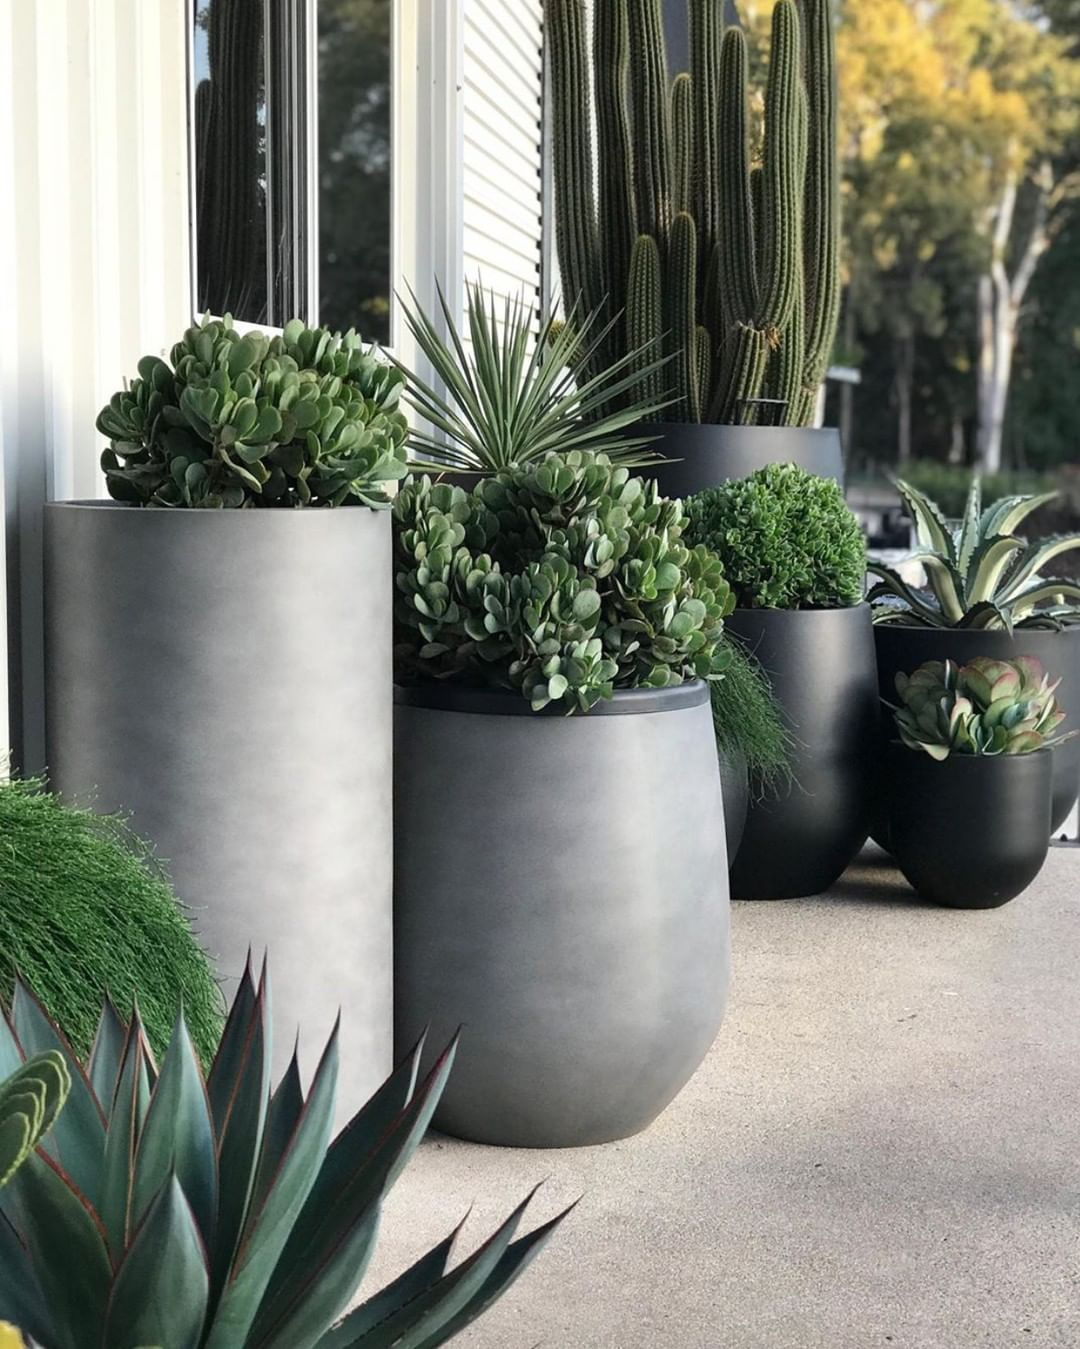 The Balcony Garden Su Instagram Did Someone Say Garden Pots Another Impressive Pot Cluster By Our F Large Garden Planters Garden Pots